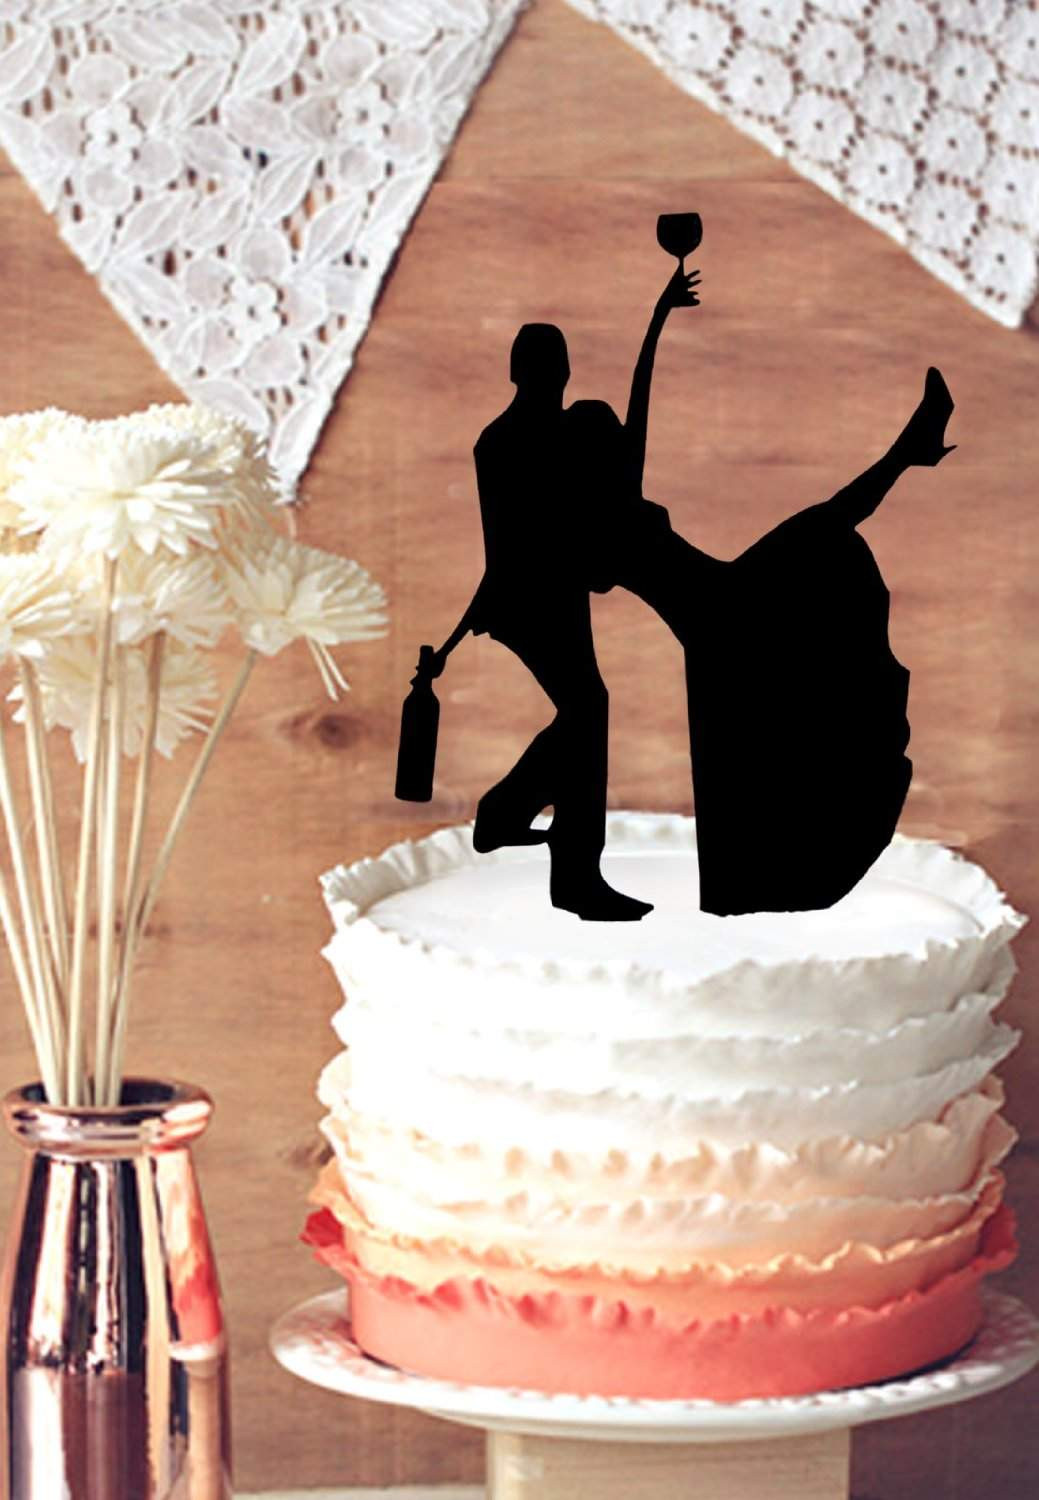 Toppers For Wedding Cakes  11 Funny Wedding Toppers for Your Cake 2018